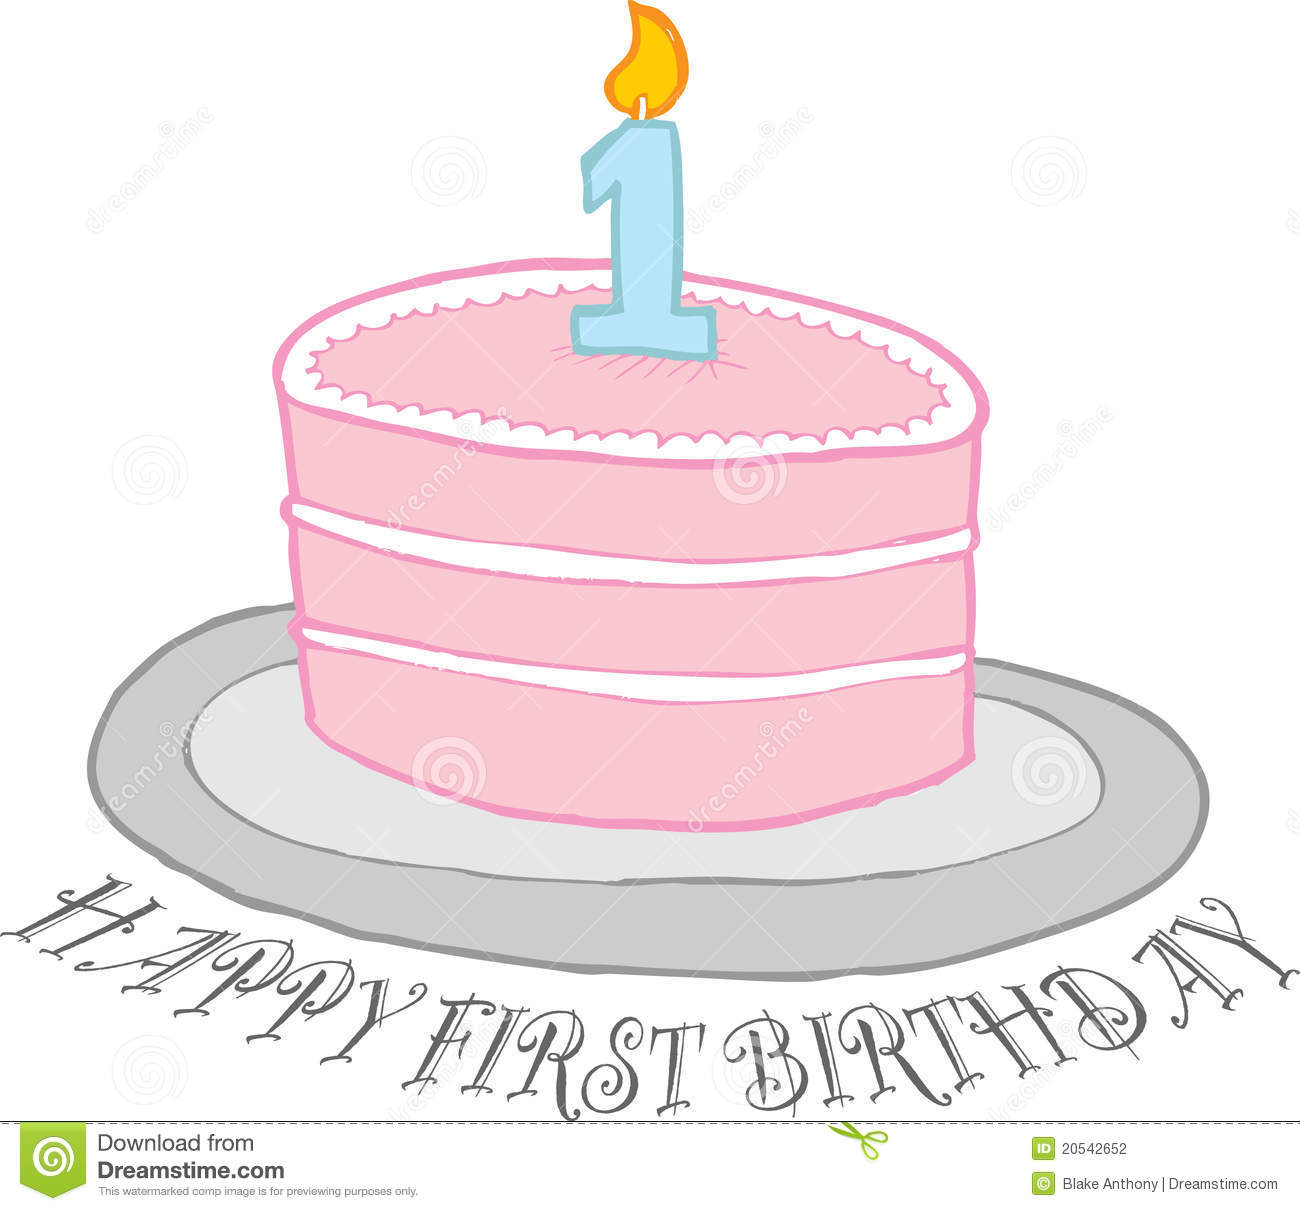 Smashed Cake Clipart : Happy First Birthday Cake Stock Photography - Image: 20542652